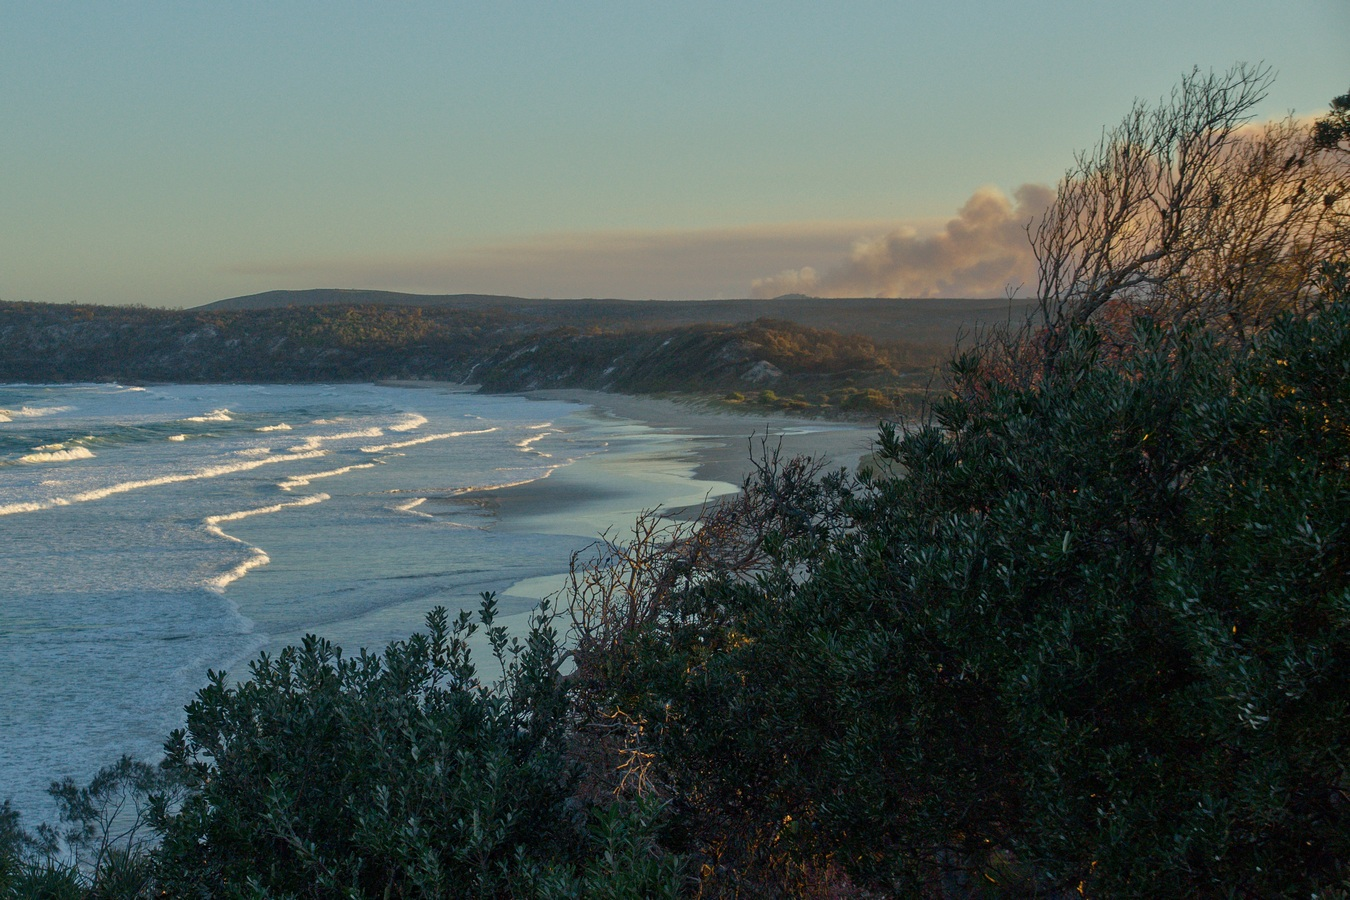 A coastal Australian landscape image depicting large smoke clouds billowing on the horizon.